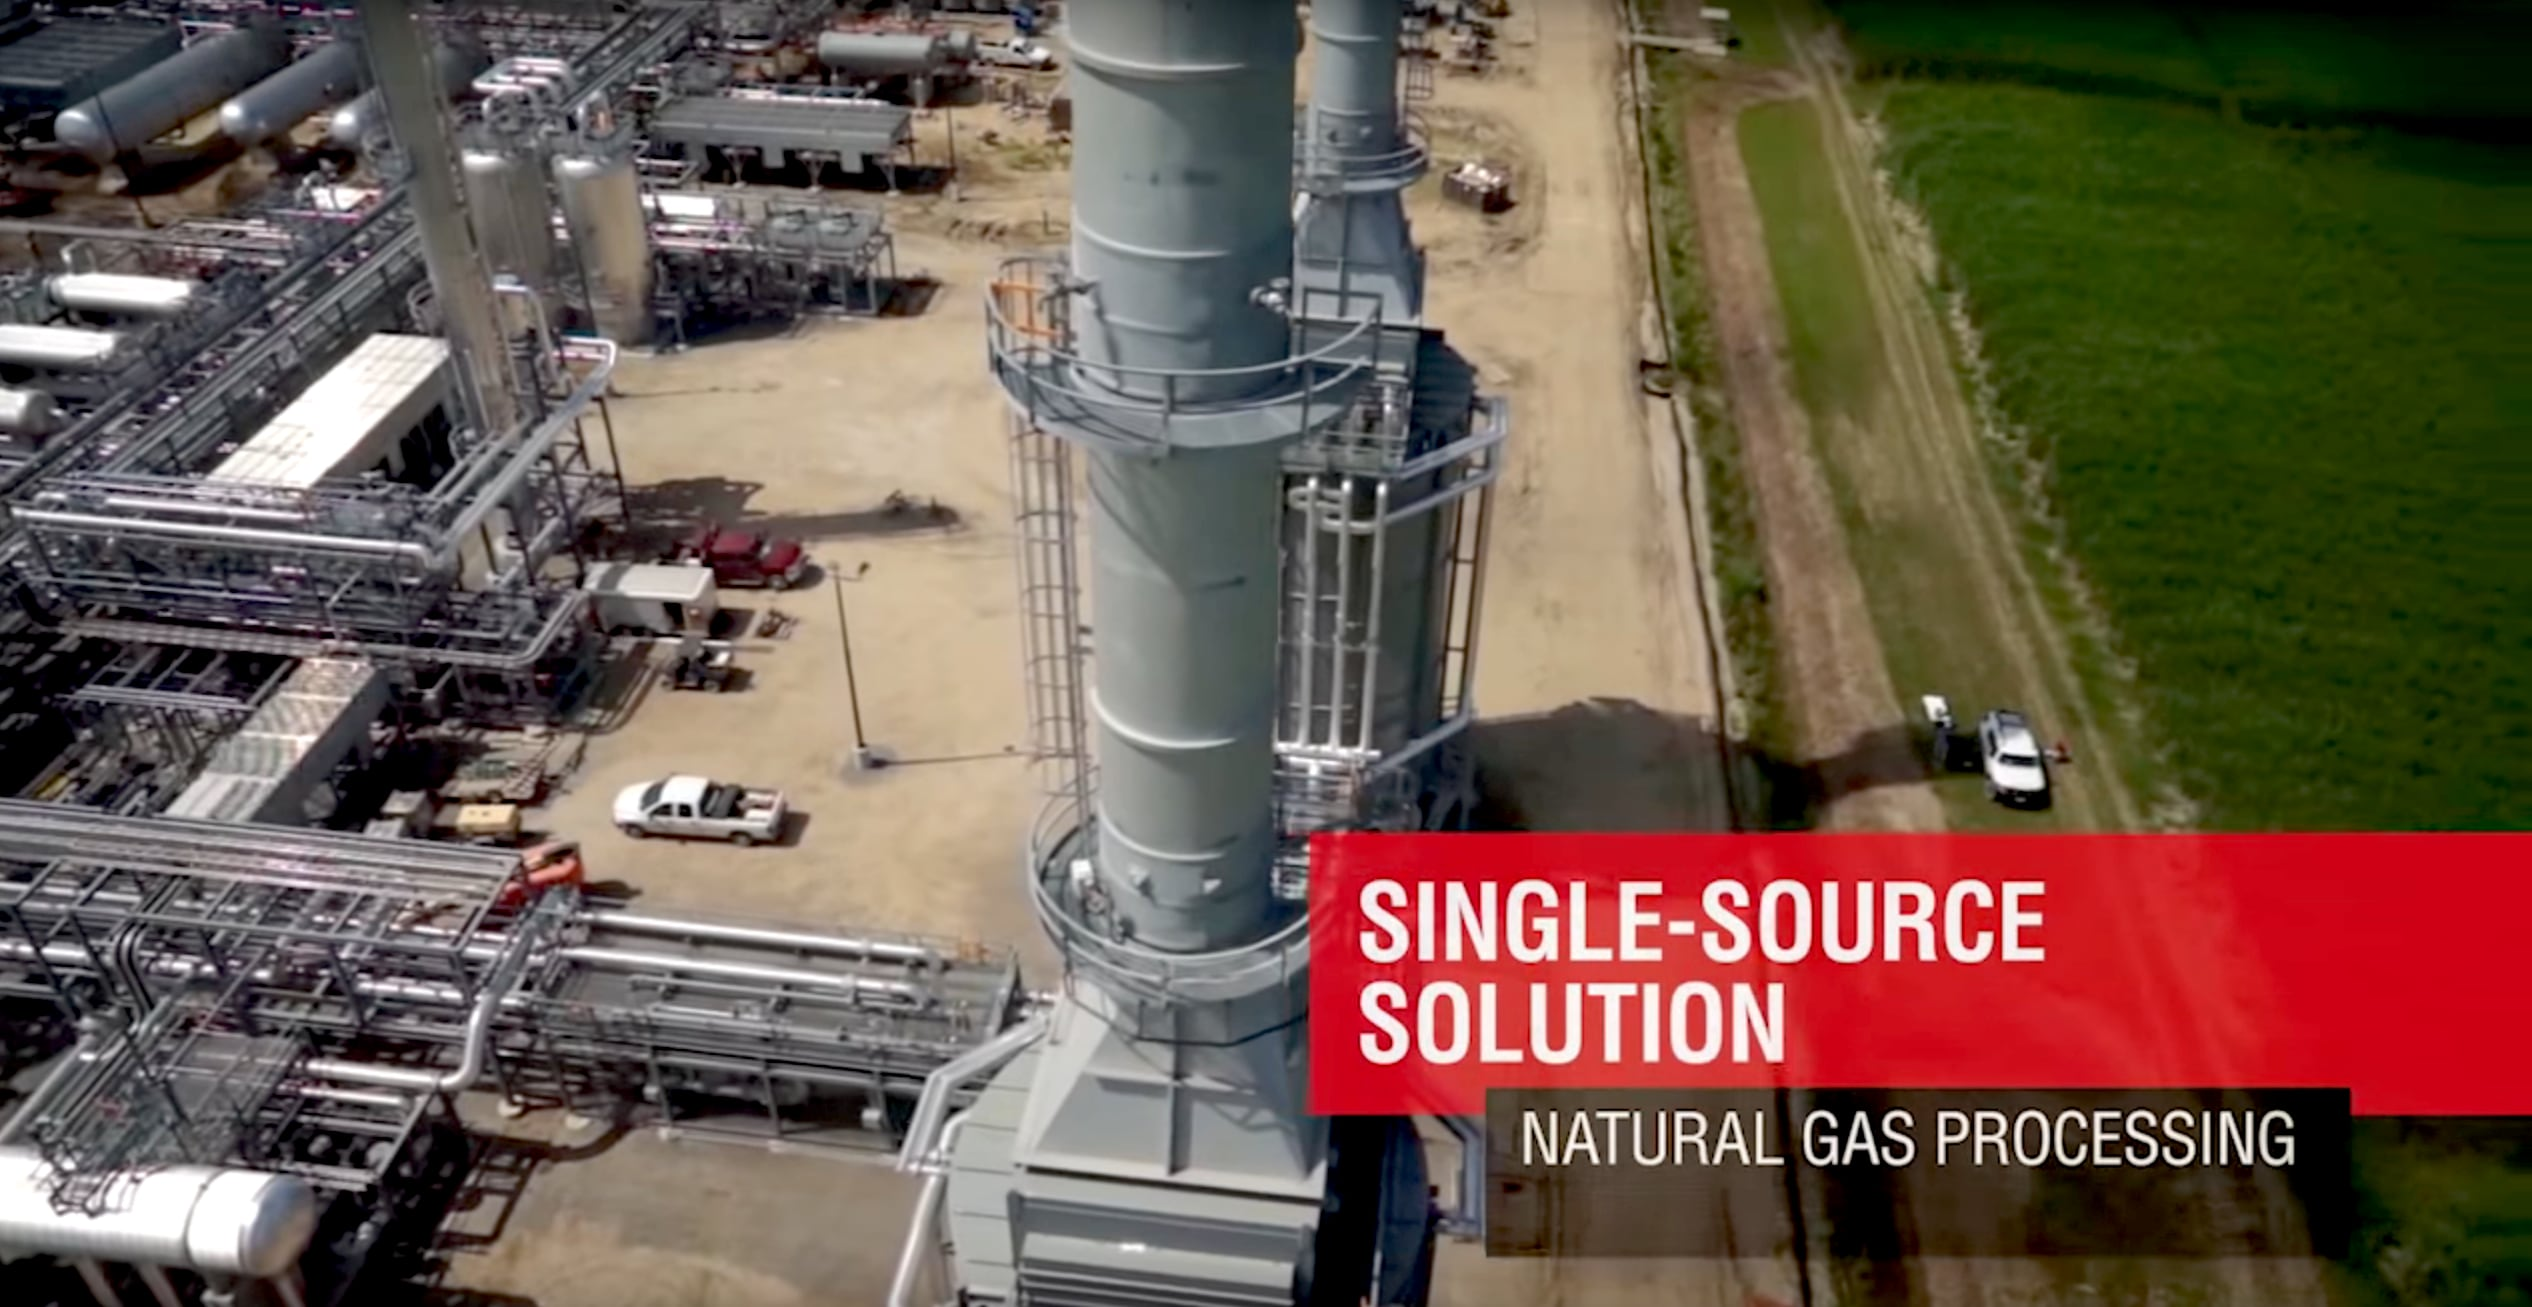 Honeywell UOP's total turnkey solution allows midstream owners and operators to process natural gas and natural gas liquids, easily, and cost-effectively.